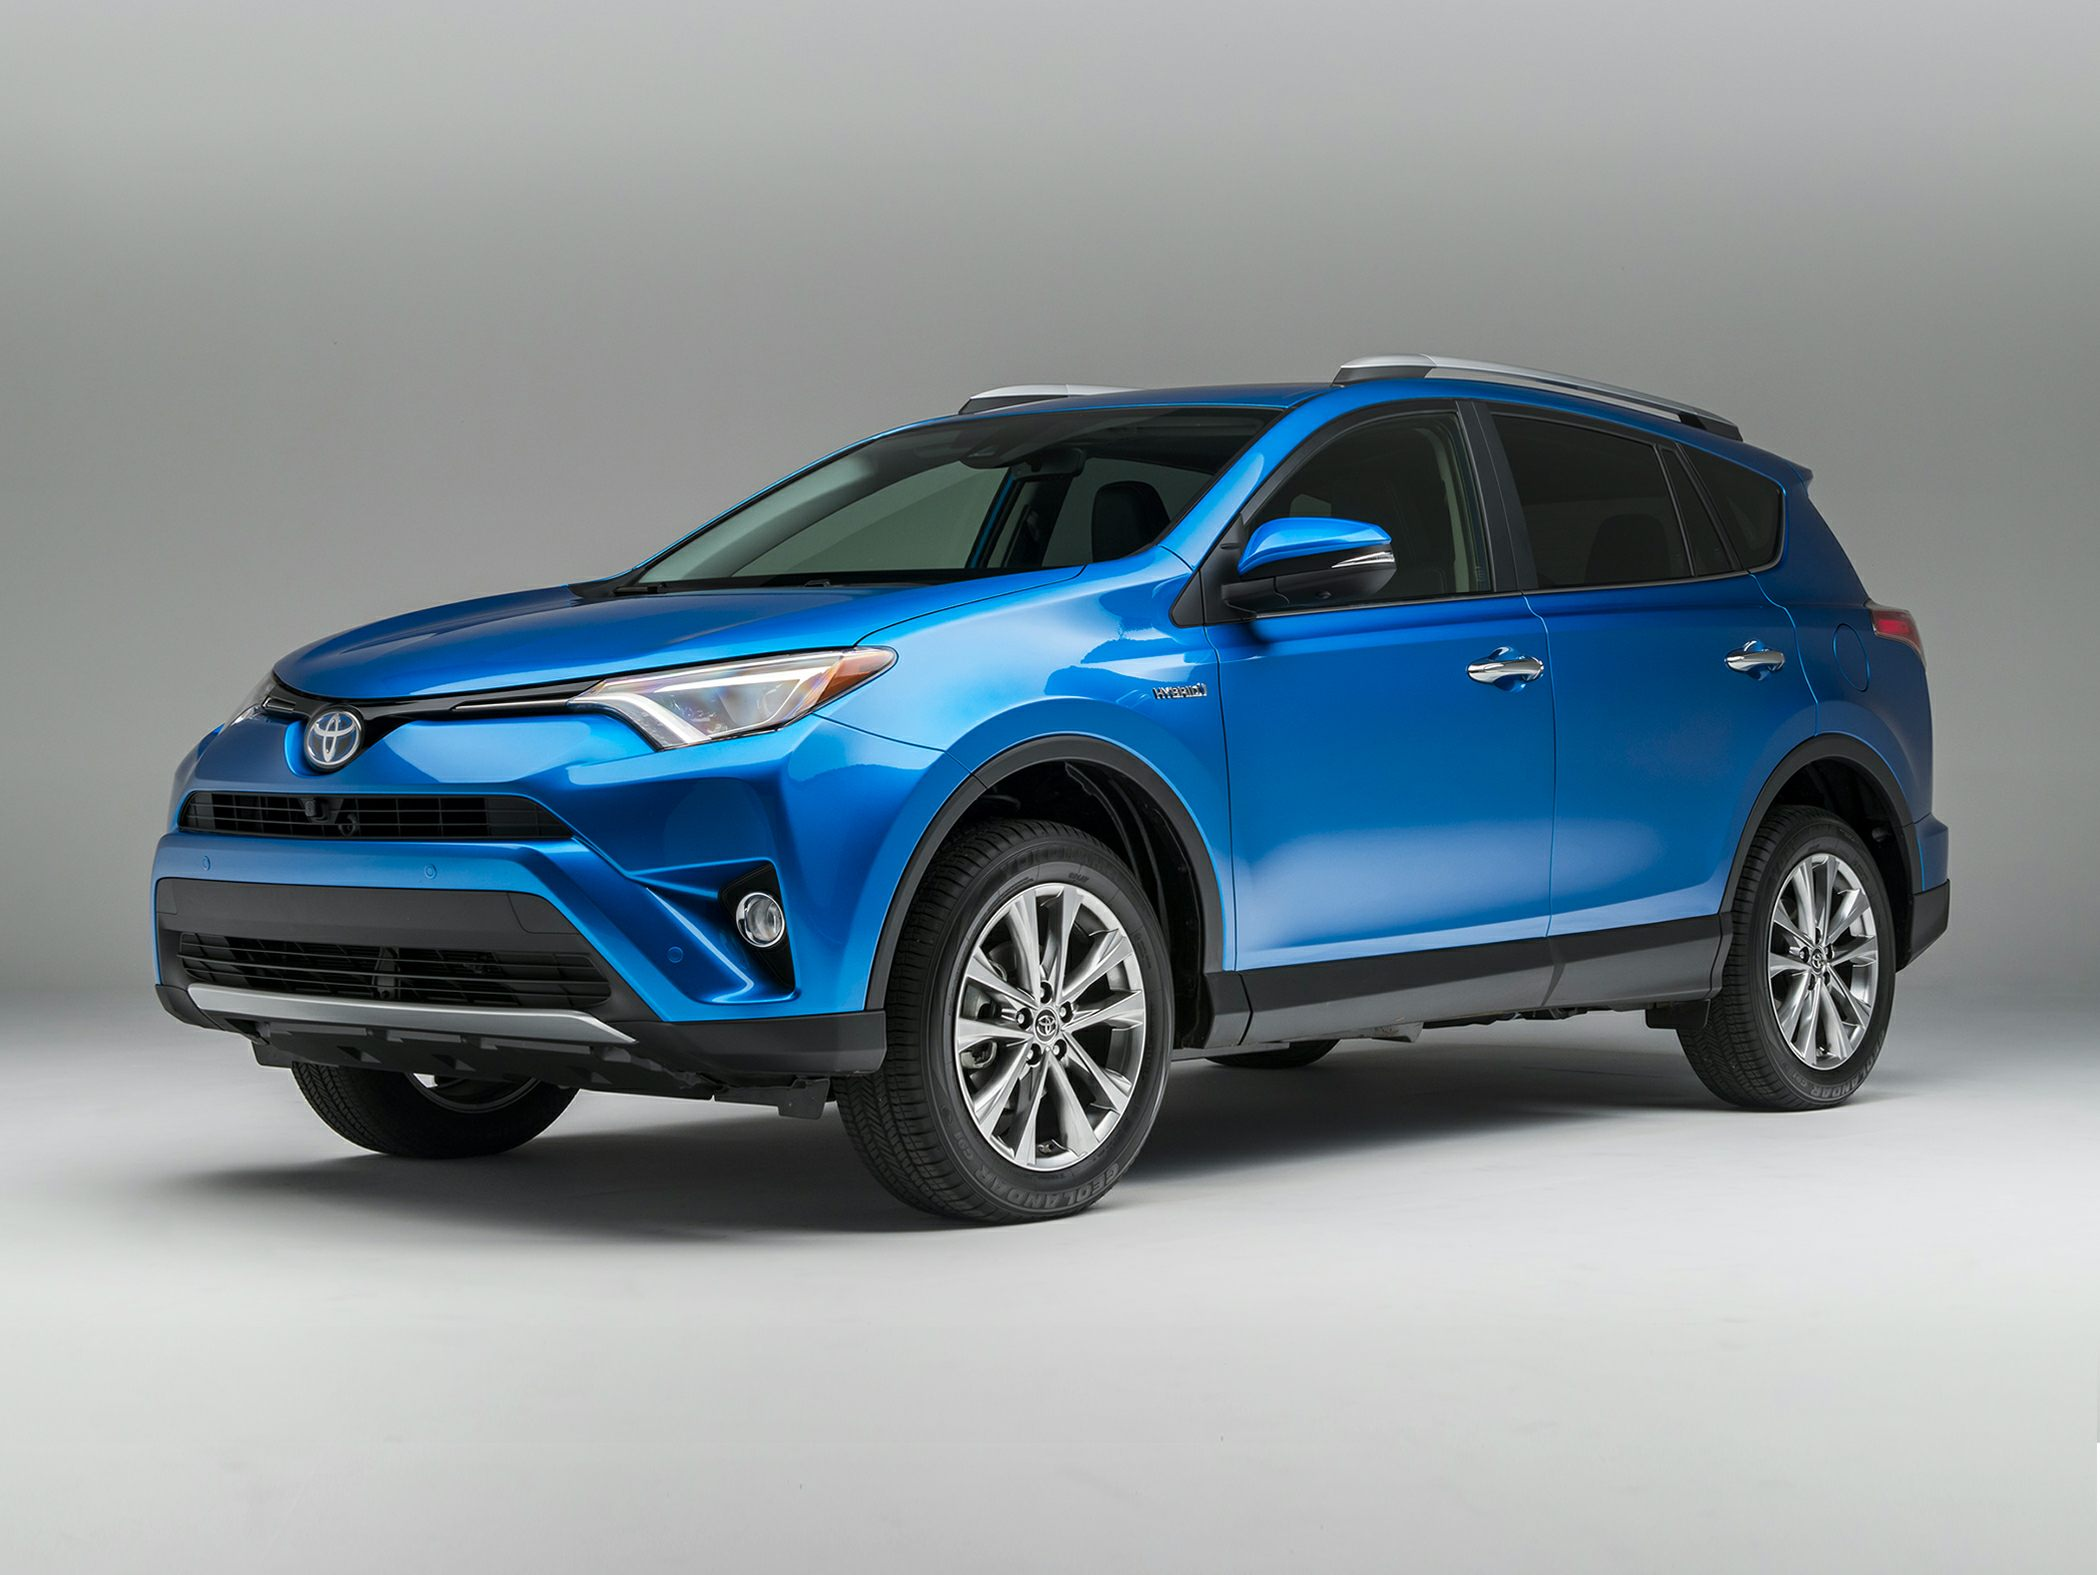 2017 toyota rav4 hybrid deals, prices, incentives & leases